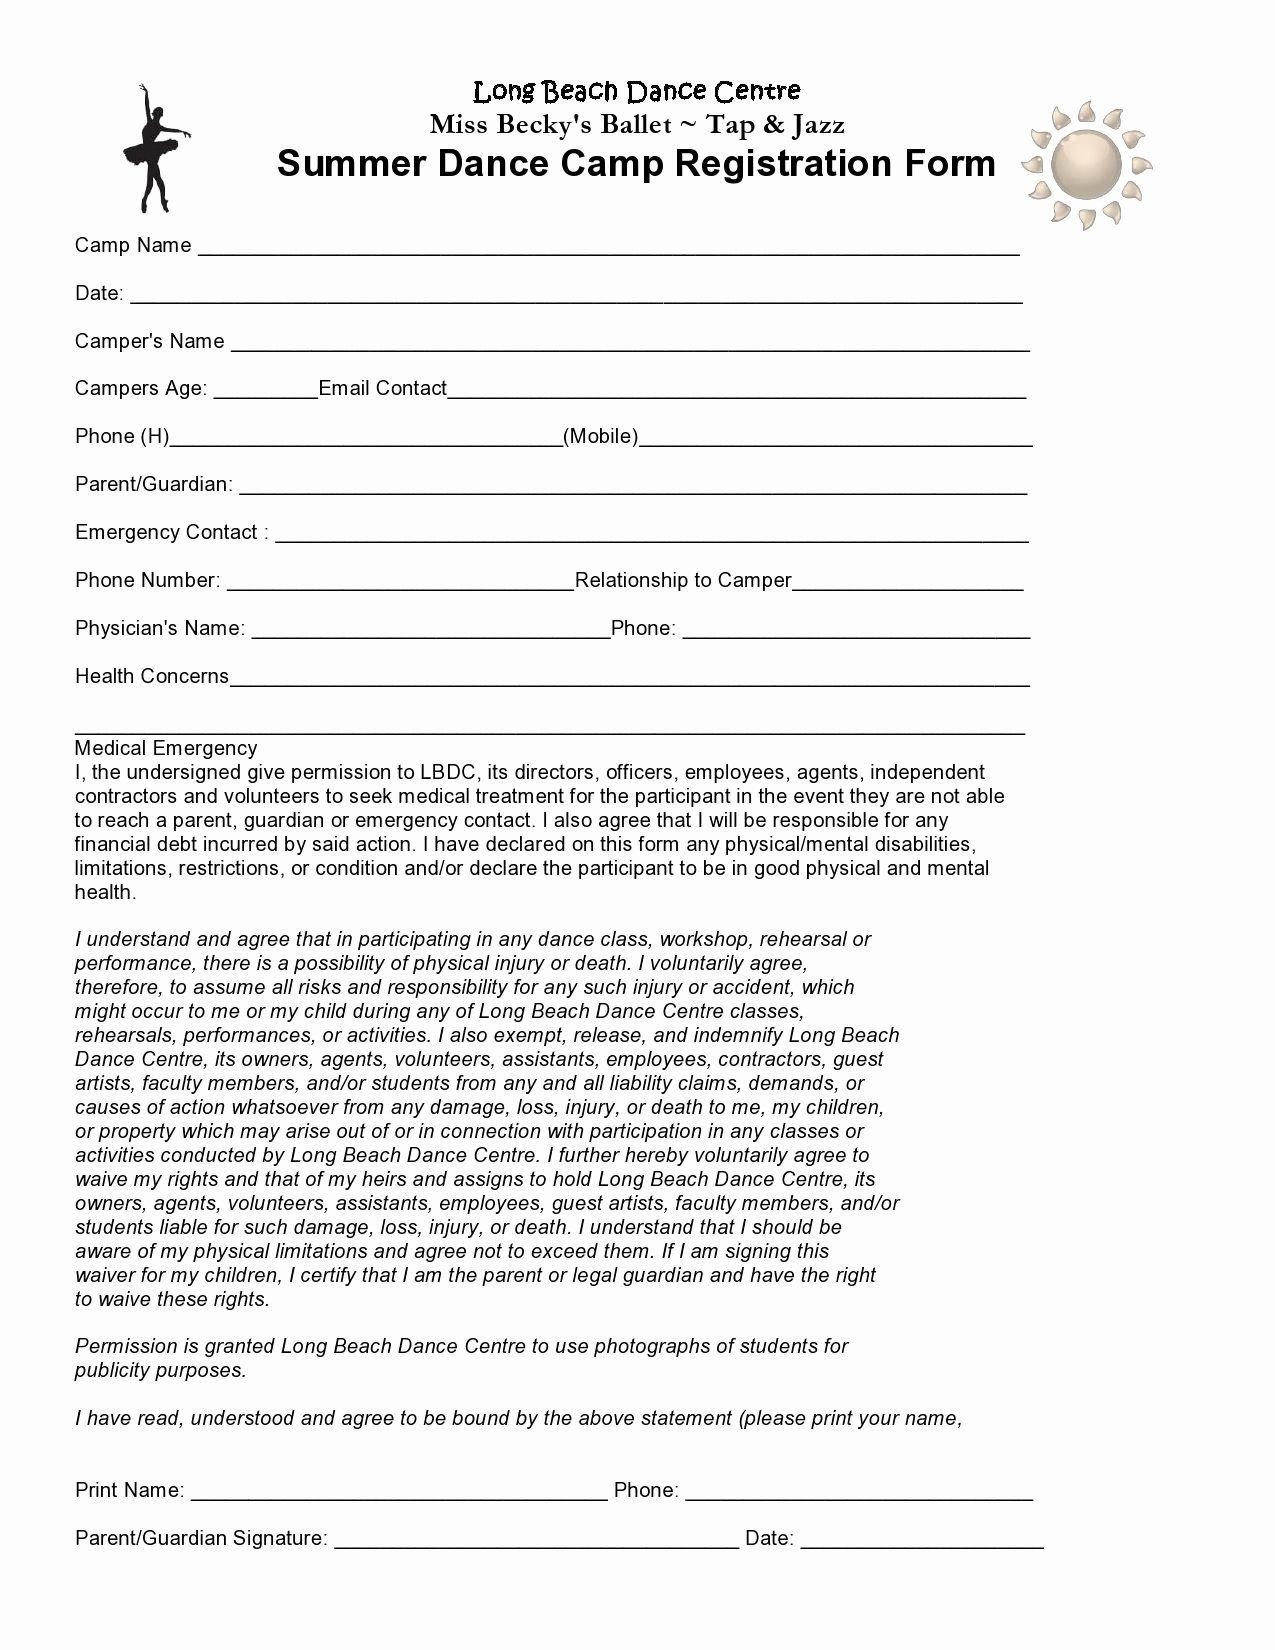 Day Camp Registration form Template New Go to Beckysdance